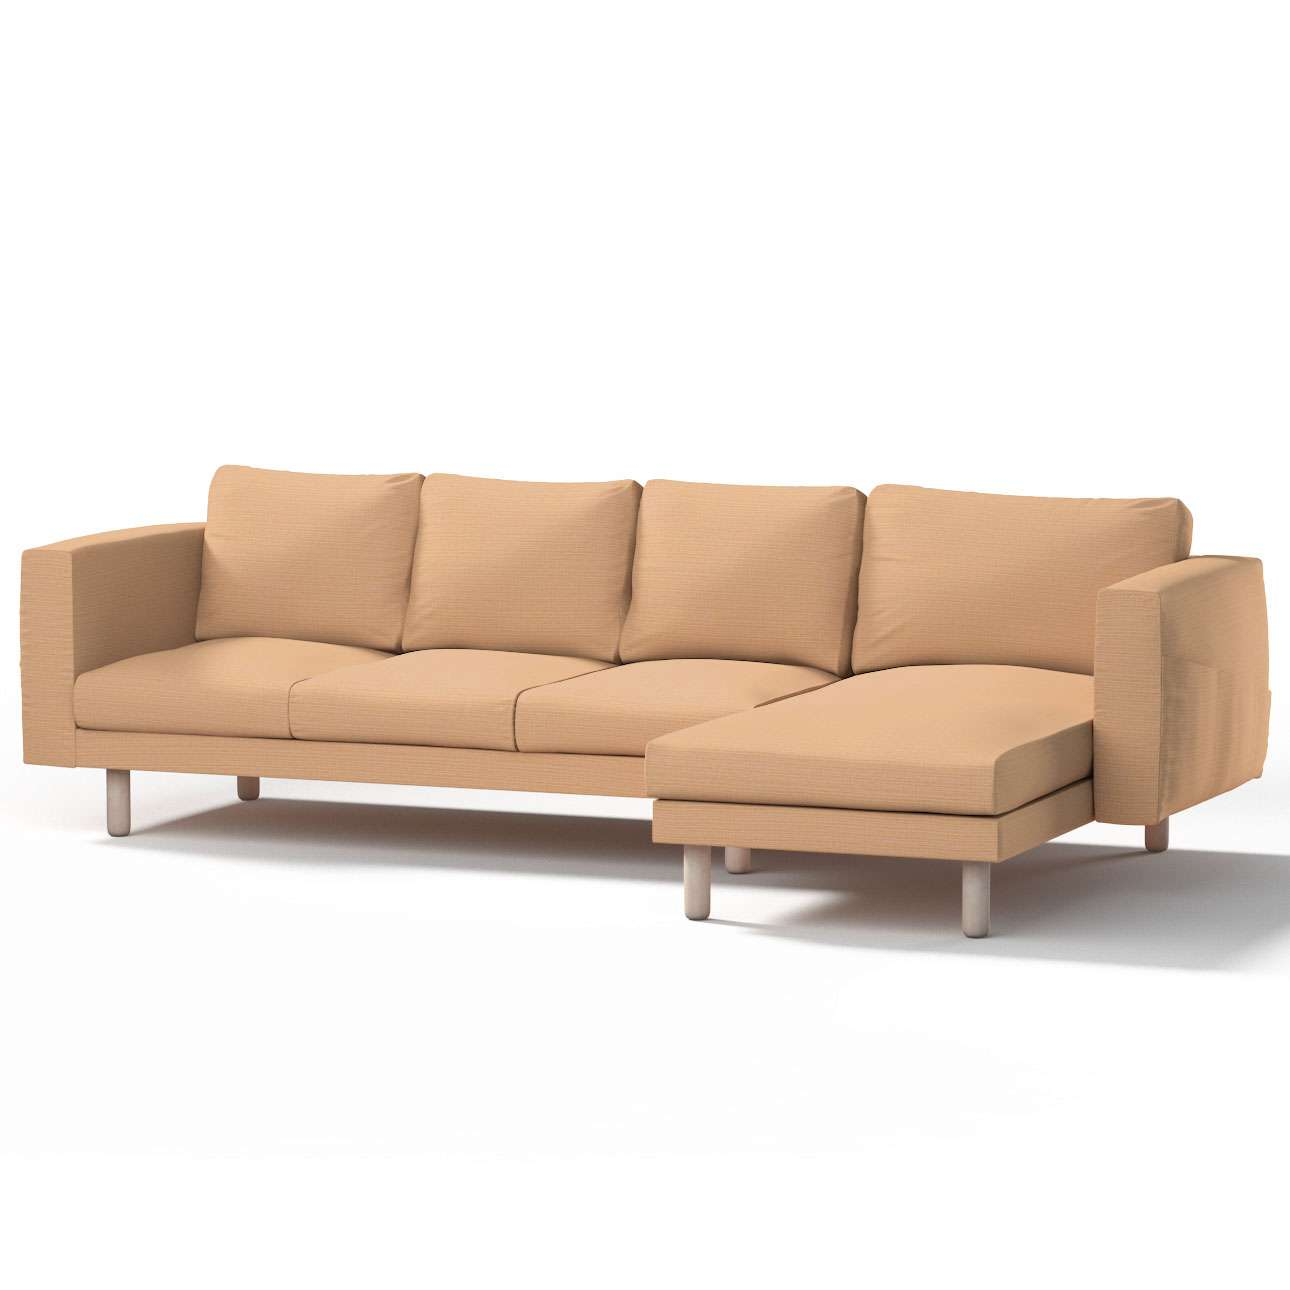 norsborg bezug f r 4 sitzer sofa mit recamiere sandfarben beige dekoria. Black Bedroom Furniture Sets. Home Design Ideas